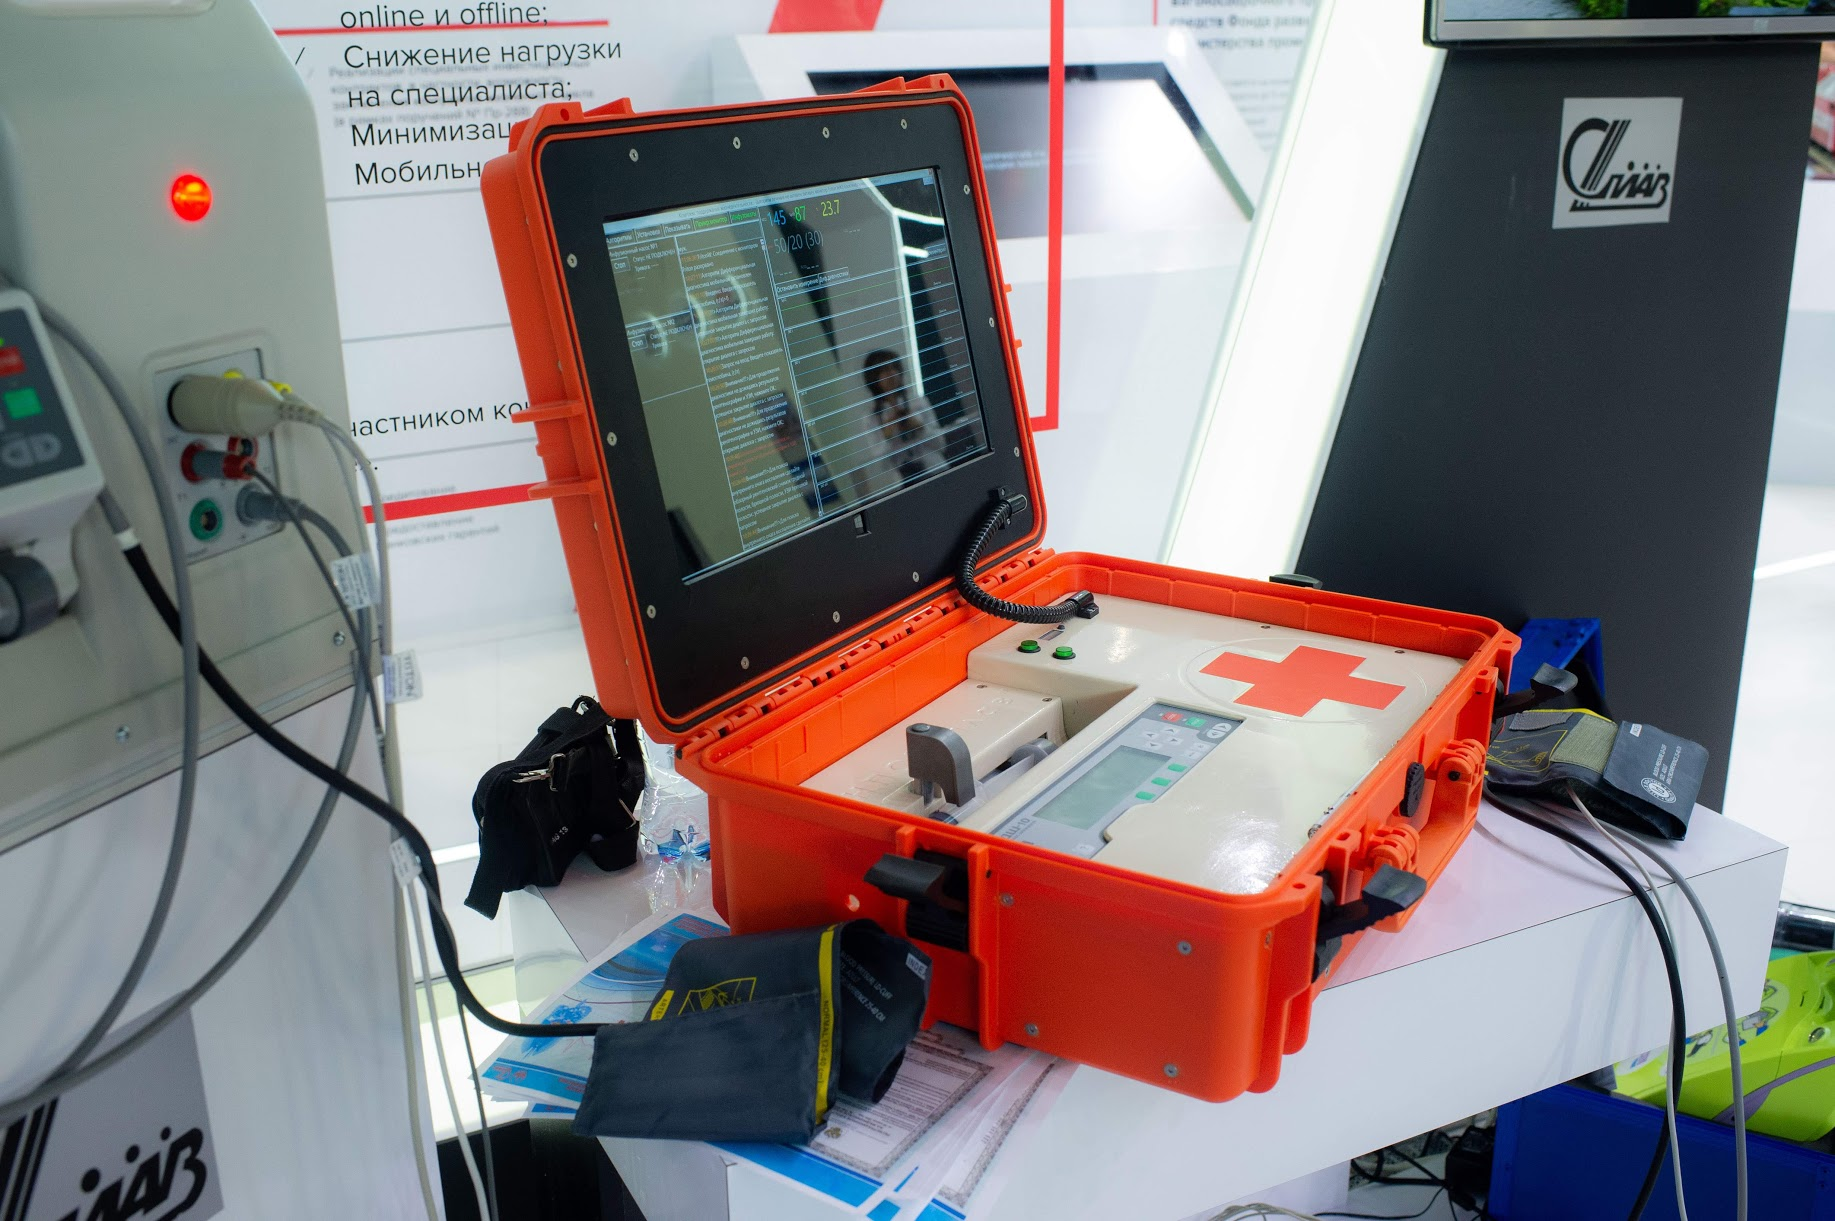 Rostec Will Introduce an Innovative Medical Equipment at the BIOTECHMED Forum